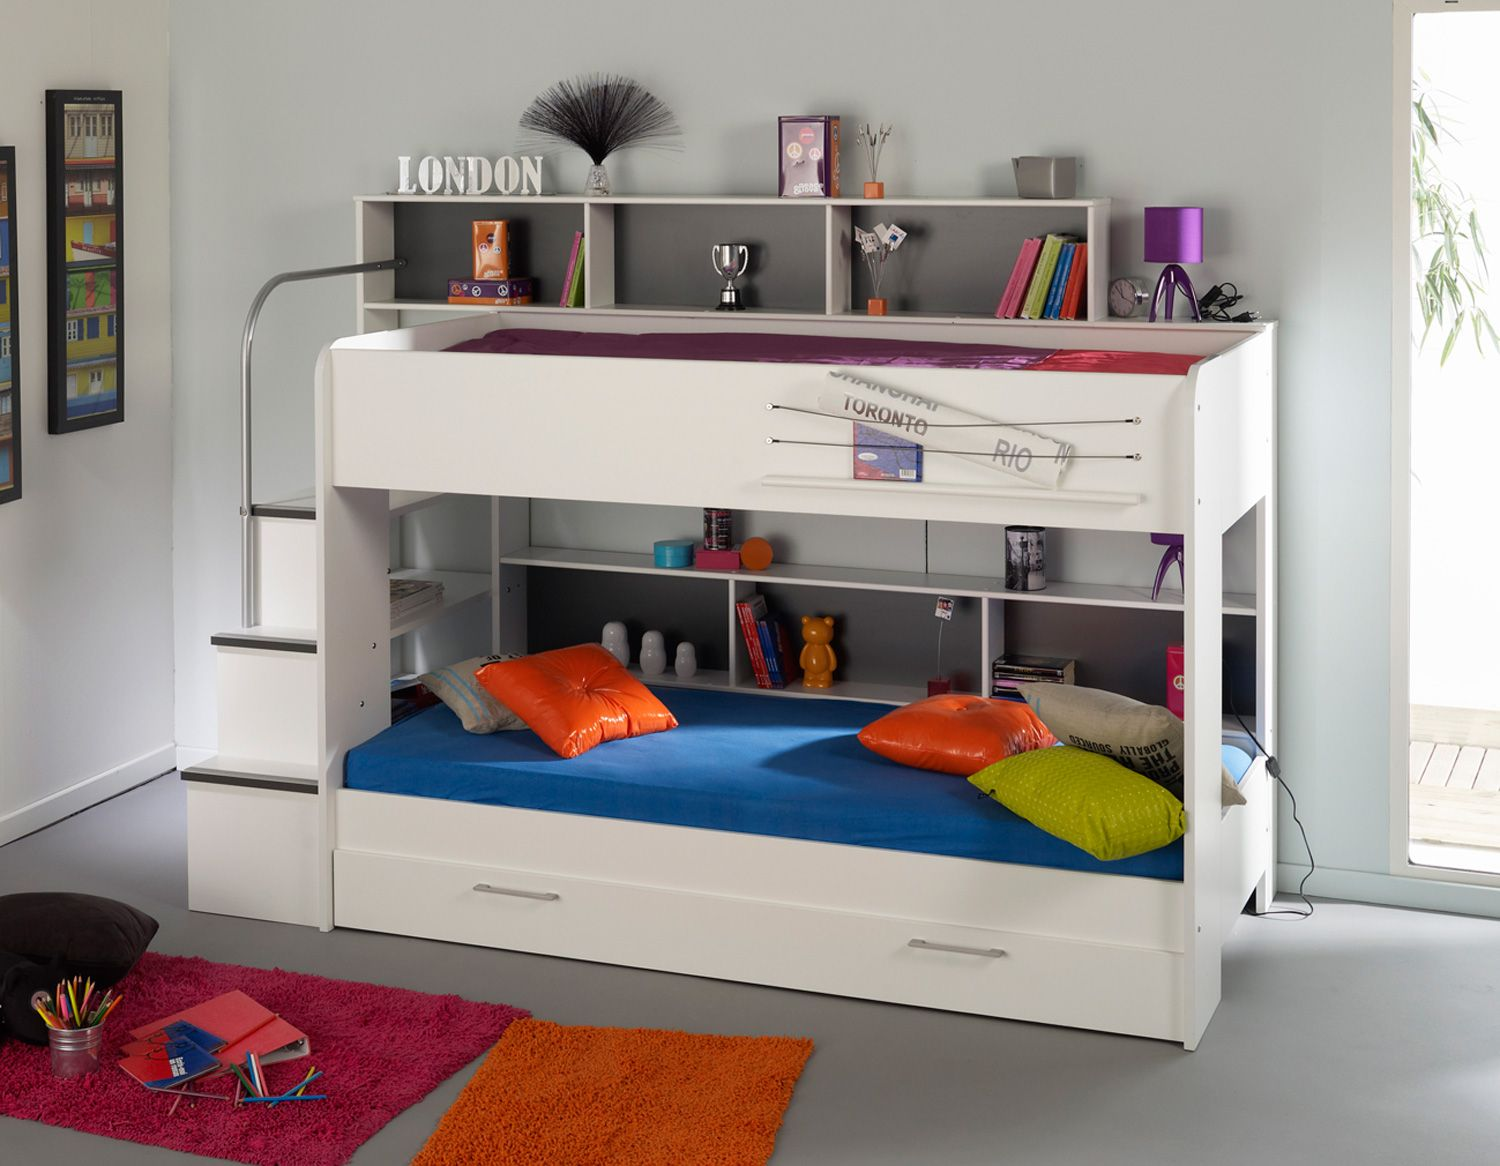 Futon Kids Room Of 30 Space Saving Beds For Small Rooms Bunk Bed Bunk Bed